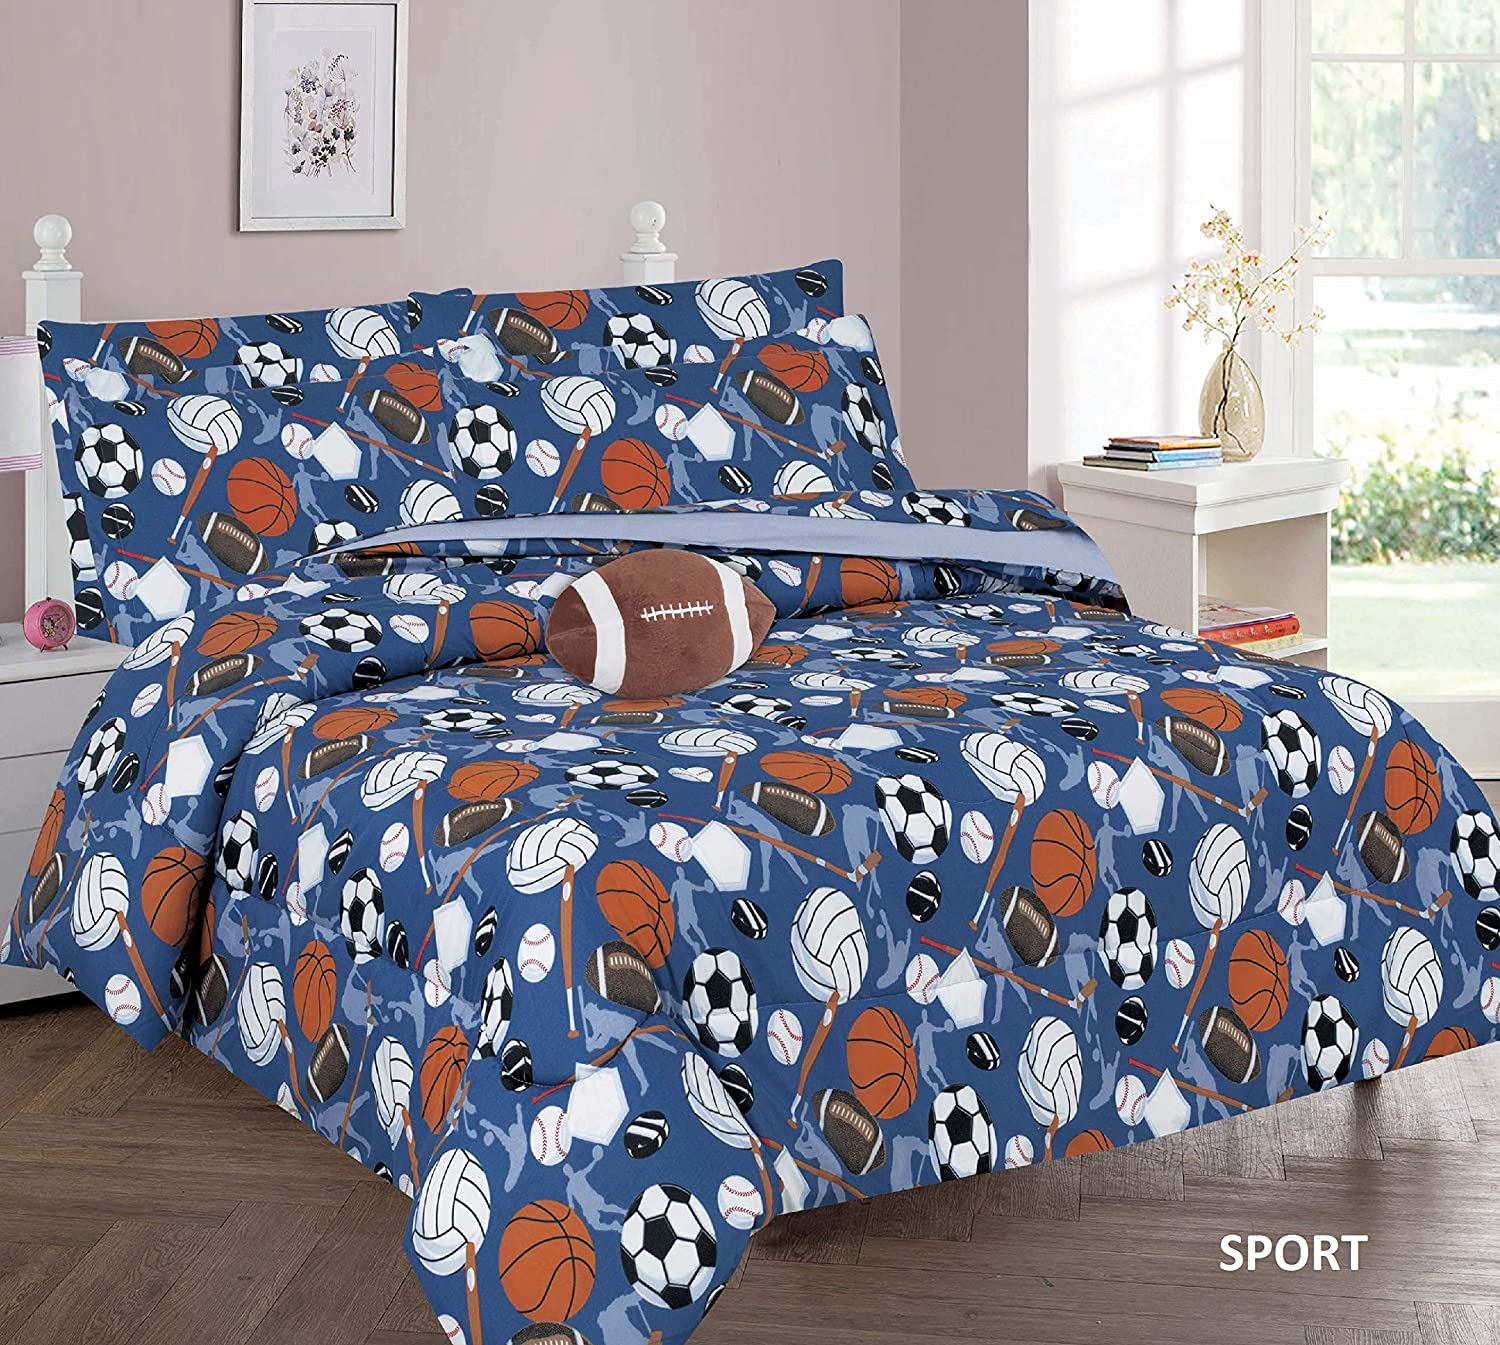 6 Piece Twin Size Kids Boys Teens Comforter Set Bed in Bag w/Sham, Sheet Set & Decorative Toy Pillow, Sports Balls Volleyball Print Blue Comforter Bedding Set w/Sheets, Twin 6pc Sports